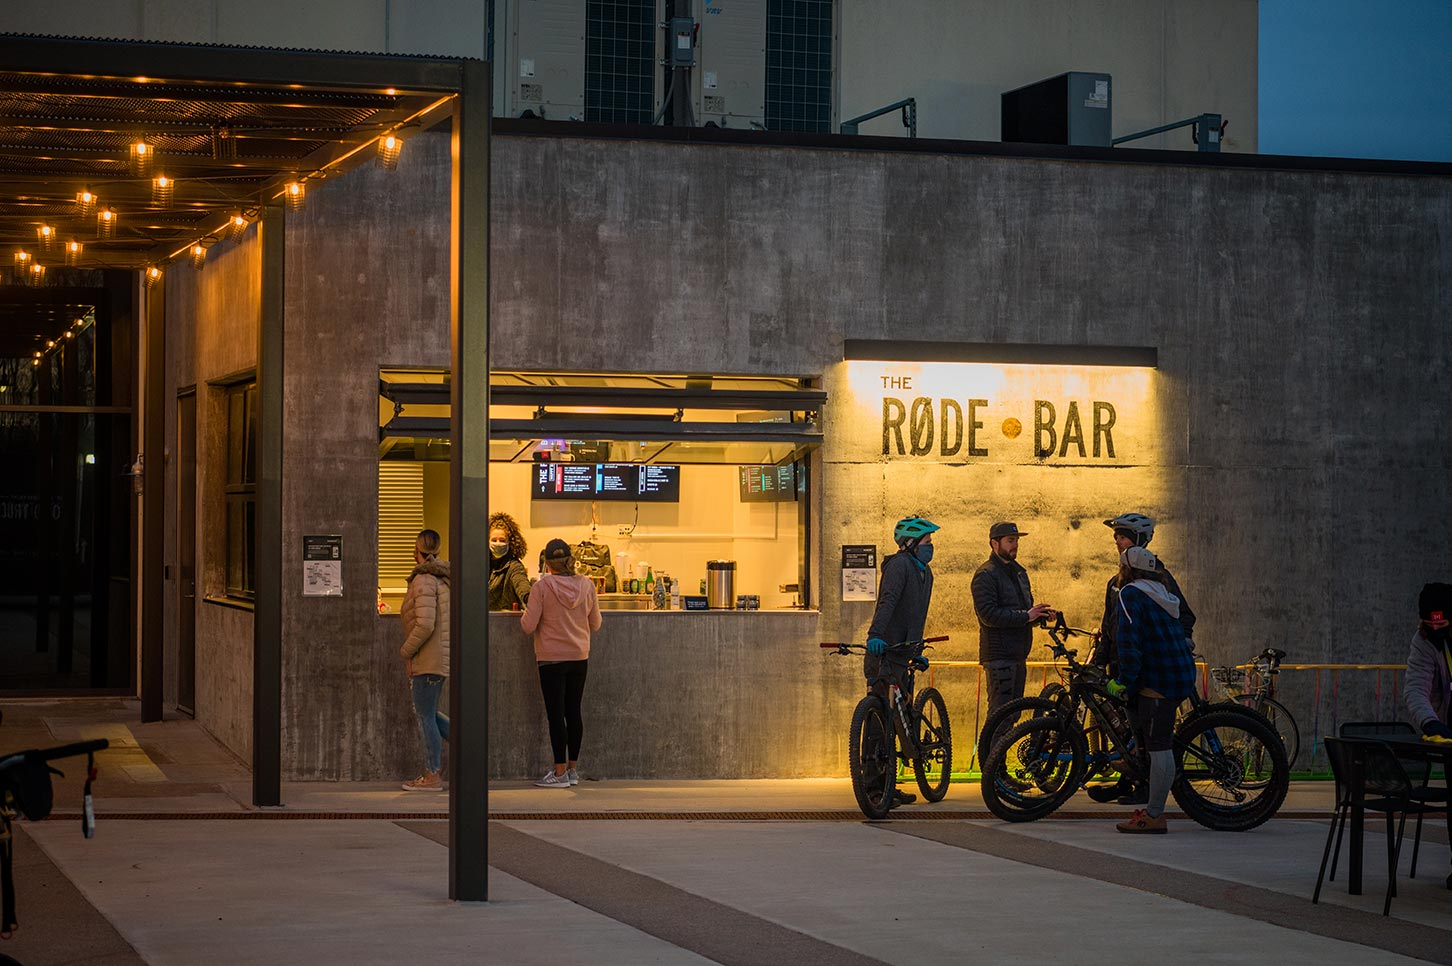 People outside of the RODE bar at dusk